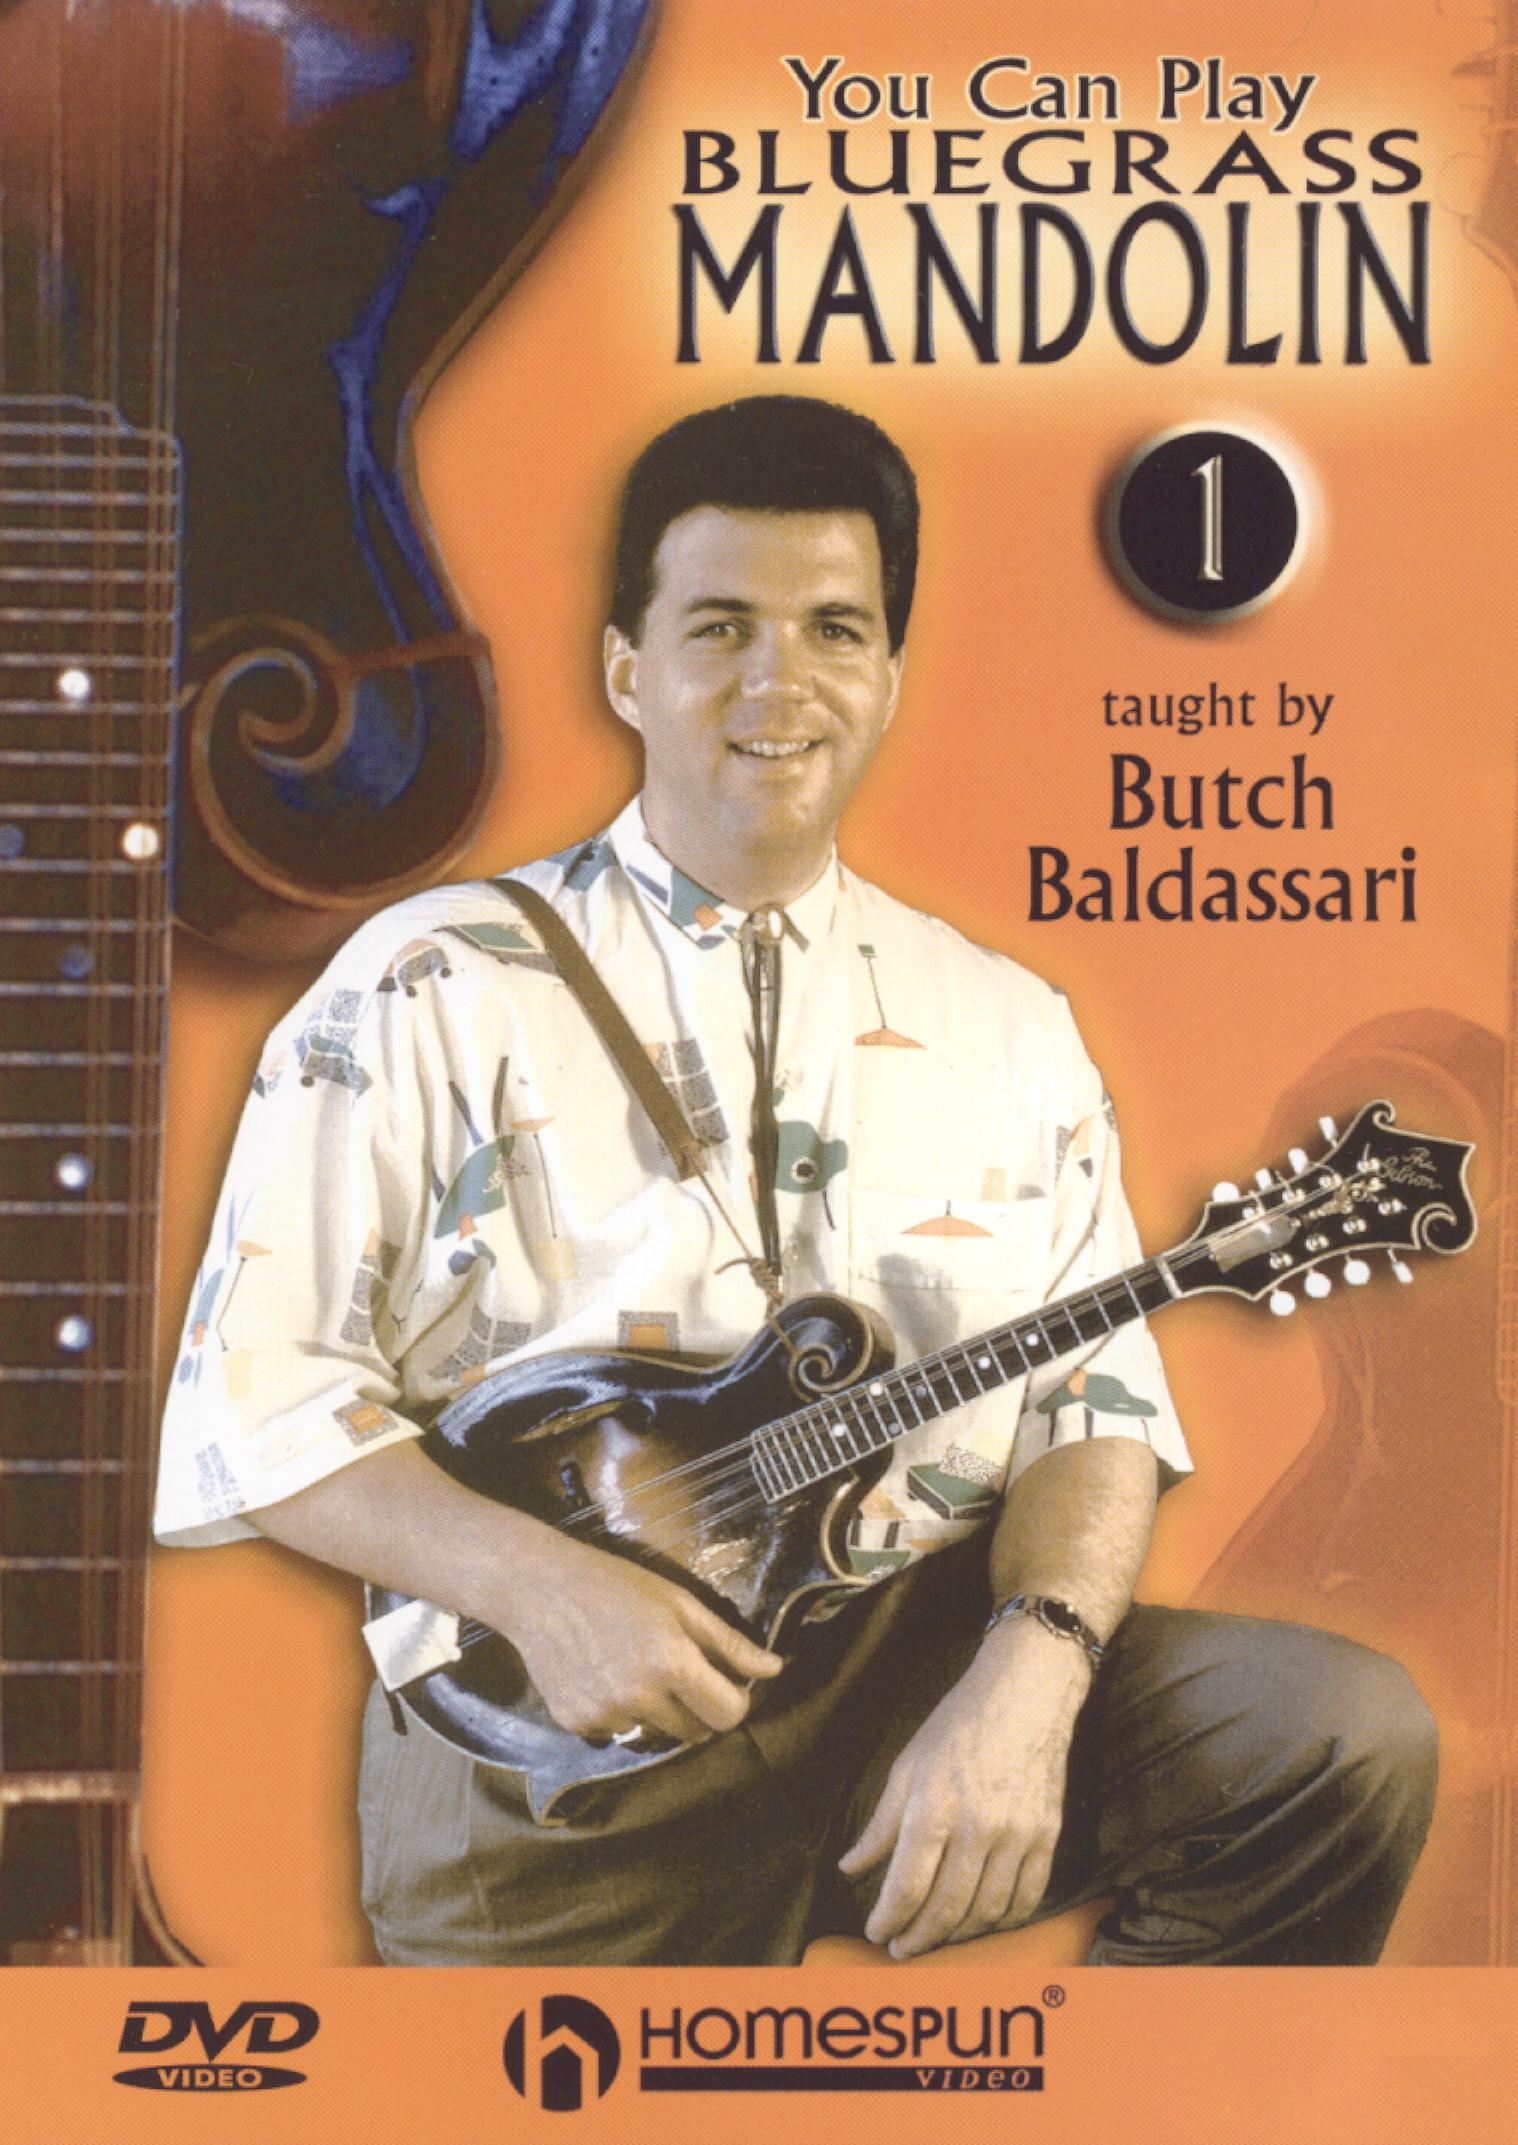 You Can Play Bluegrass Mandolin, Vol. 1